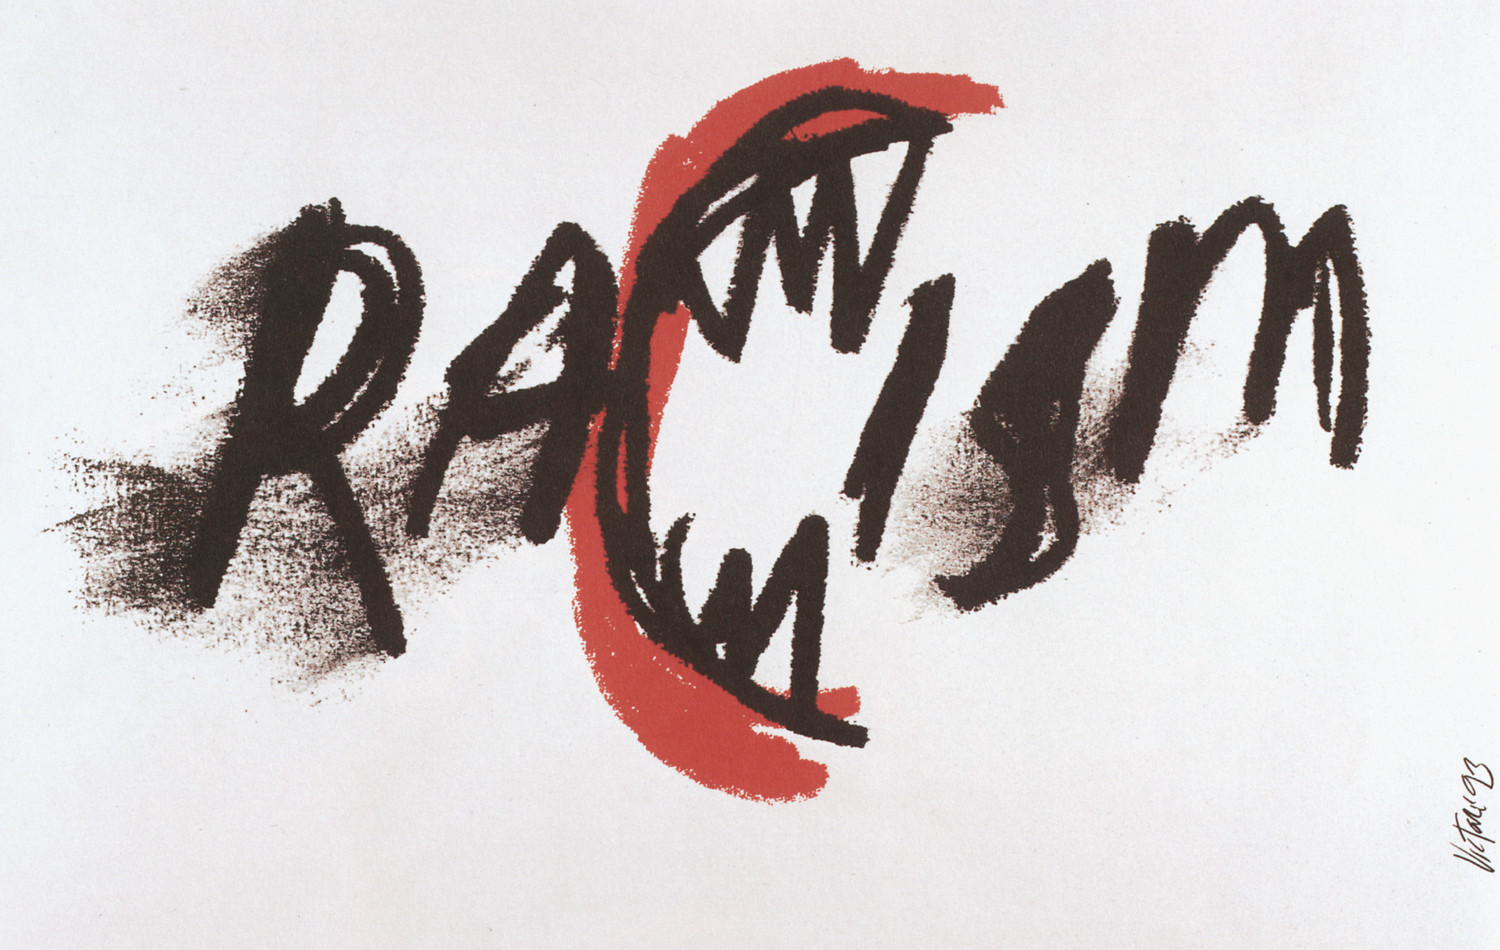 Racism poster by James Victore